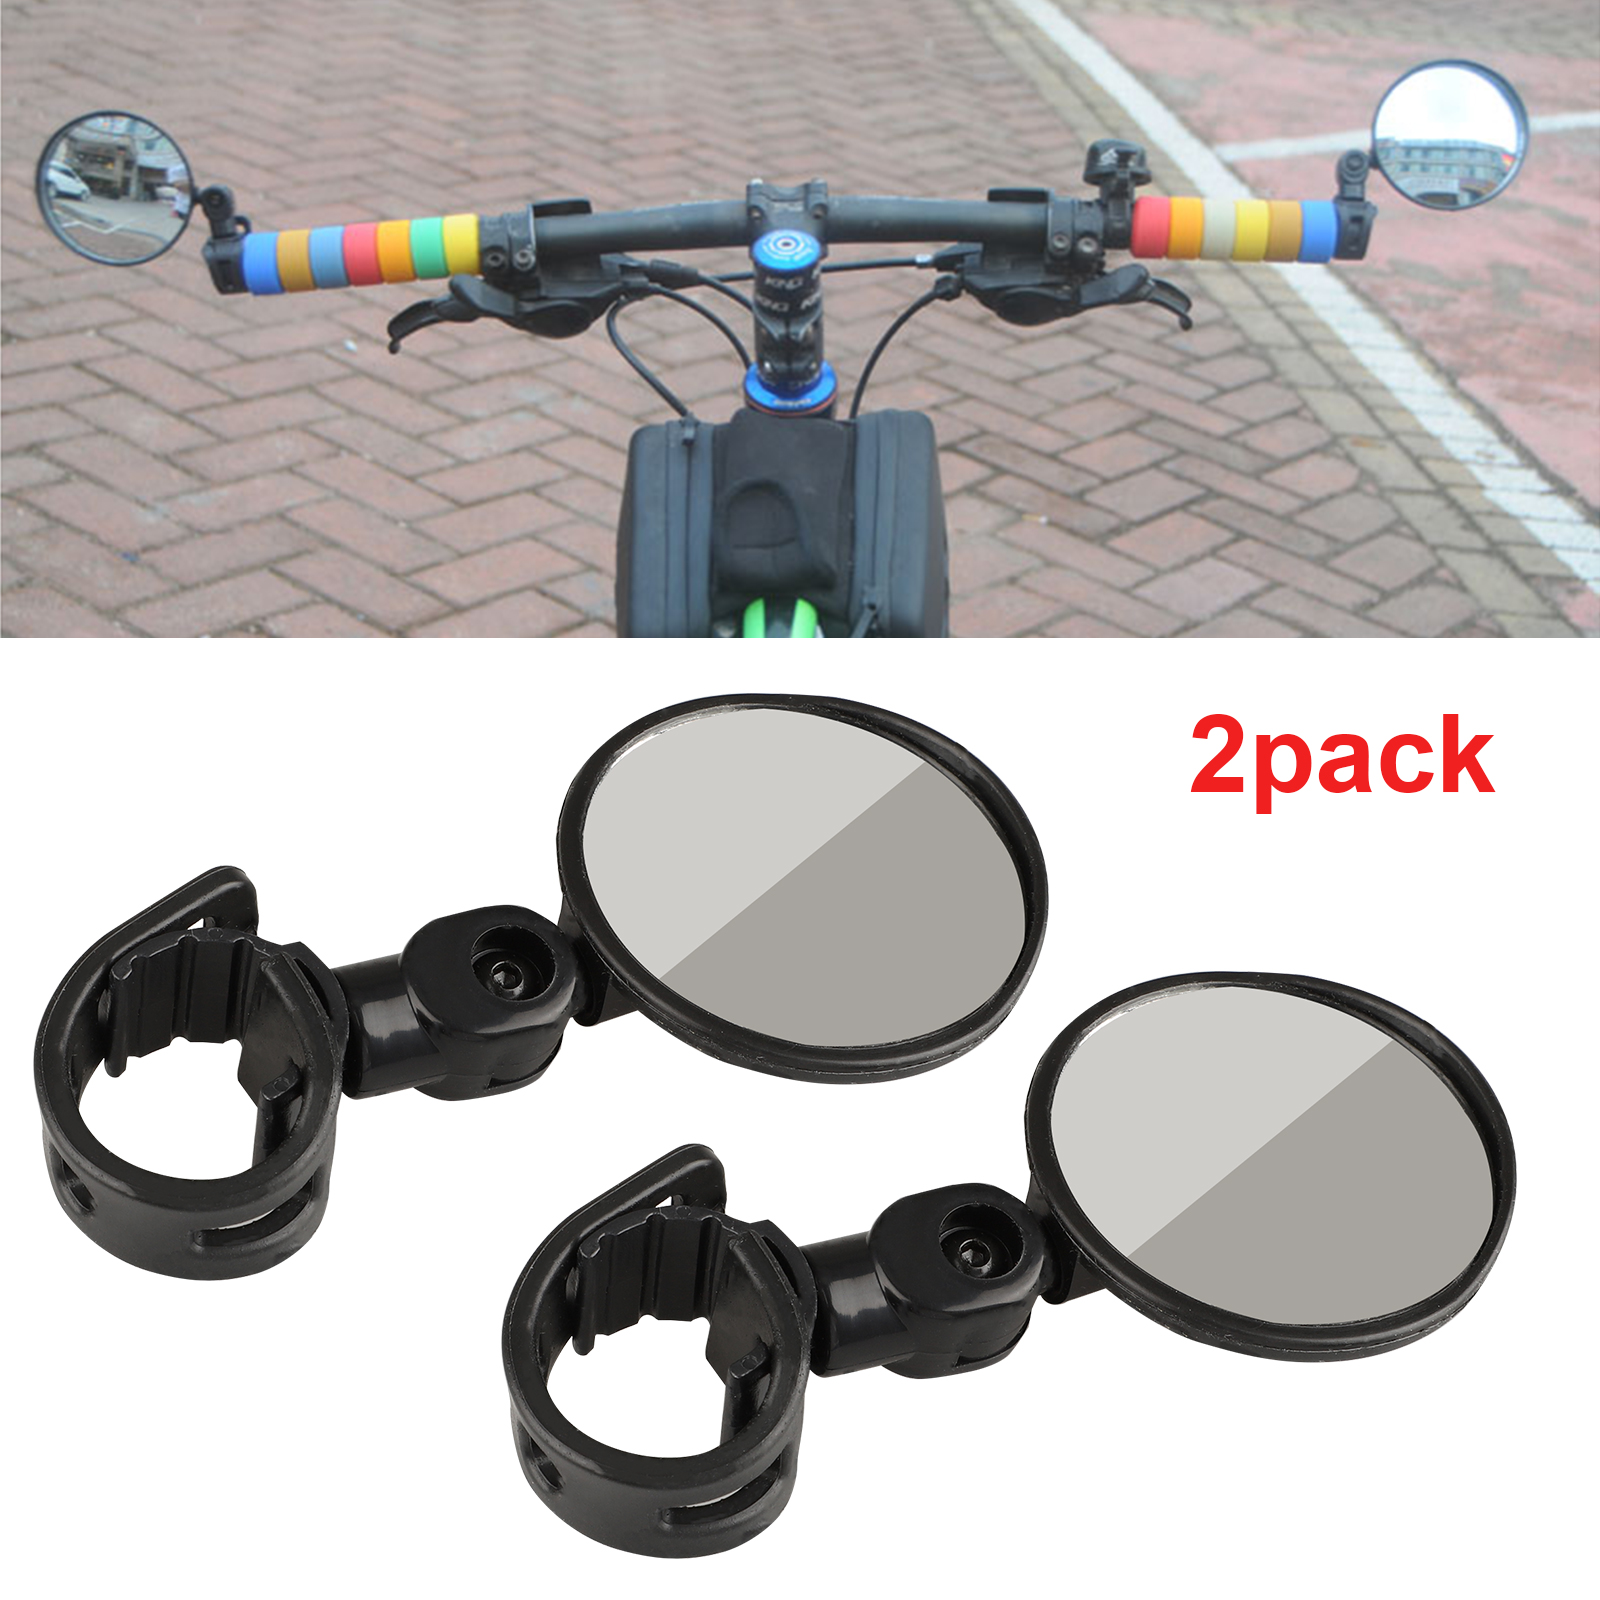 2Pcs 360° Rotate Adjustable Handlebar Rearview Mirror For Bike Bicycle Cycl RC